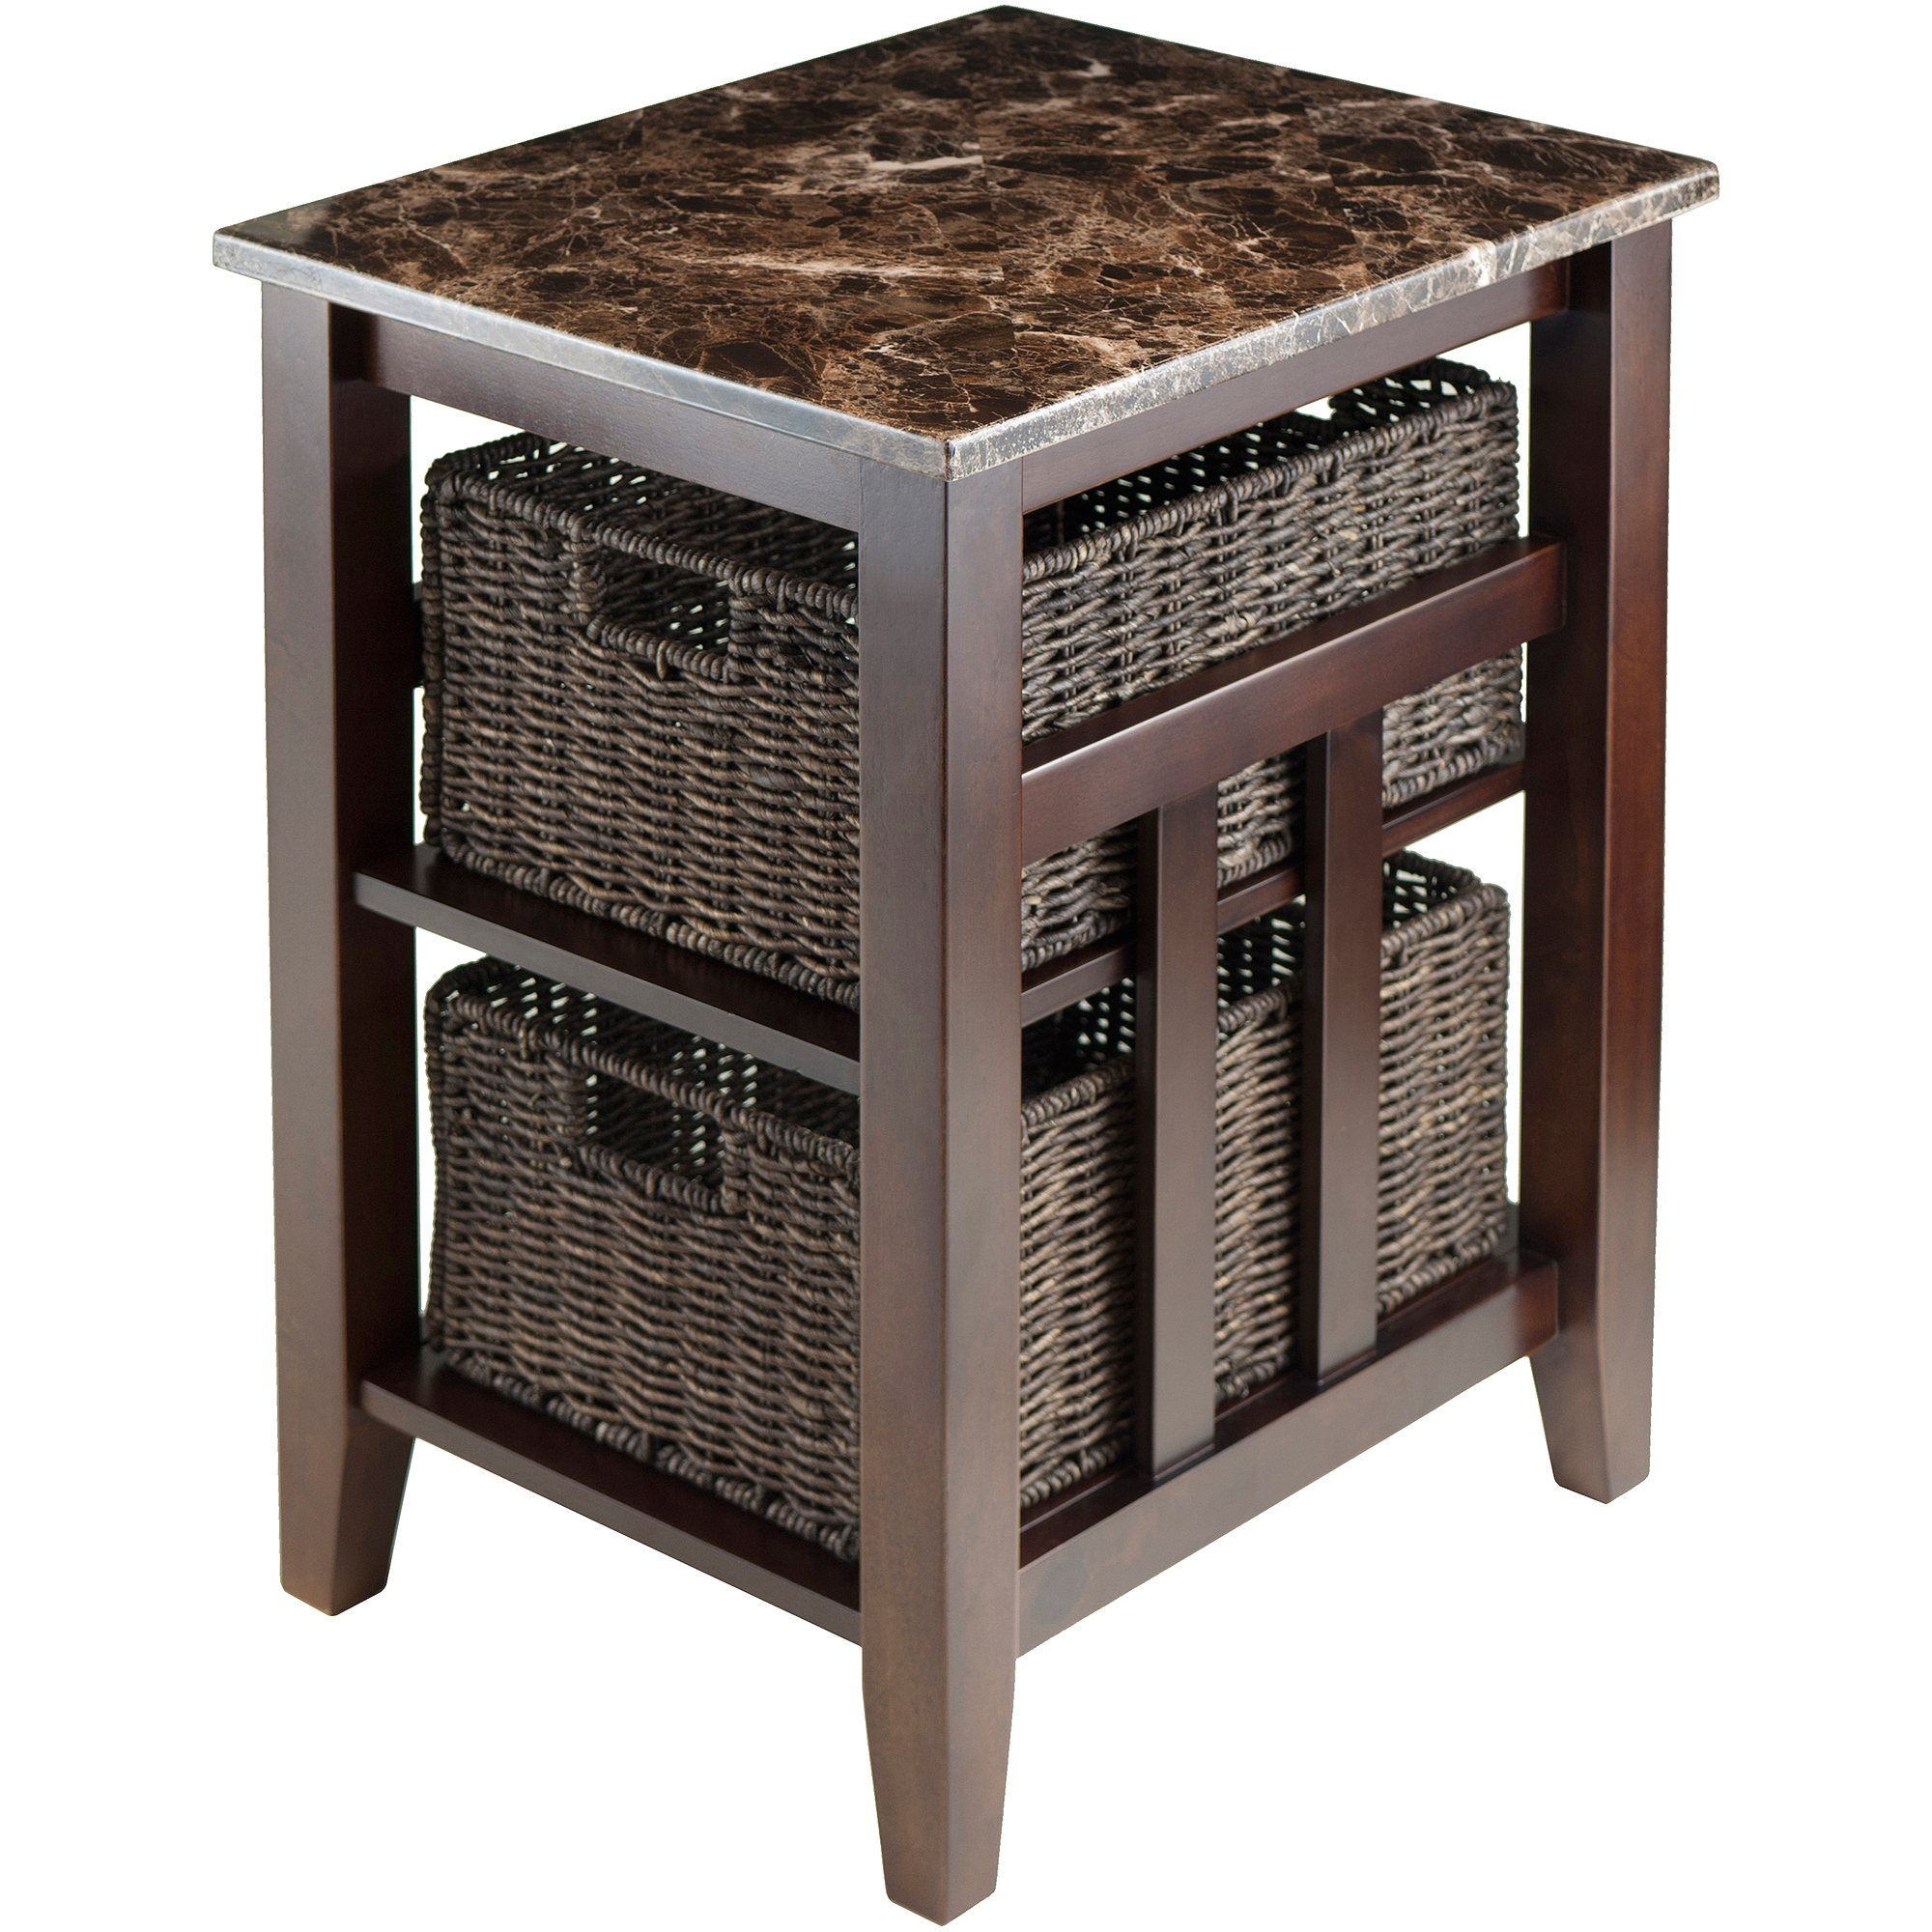 Winsome Wood Zoey Faux Marble Console Table w/ 3 Baskets, Walnut